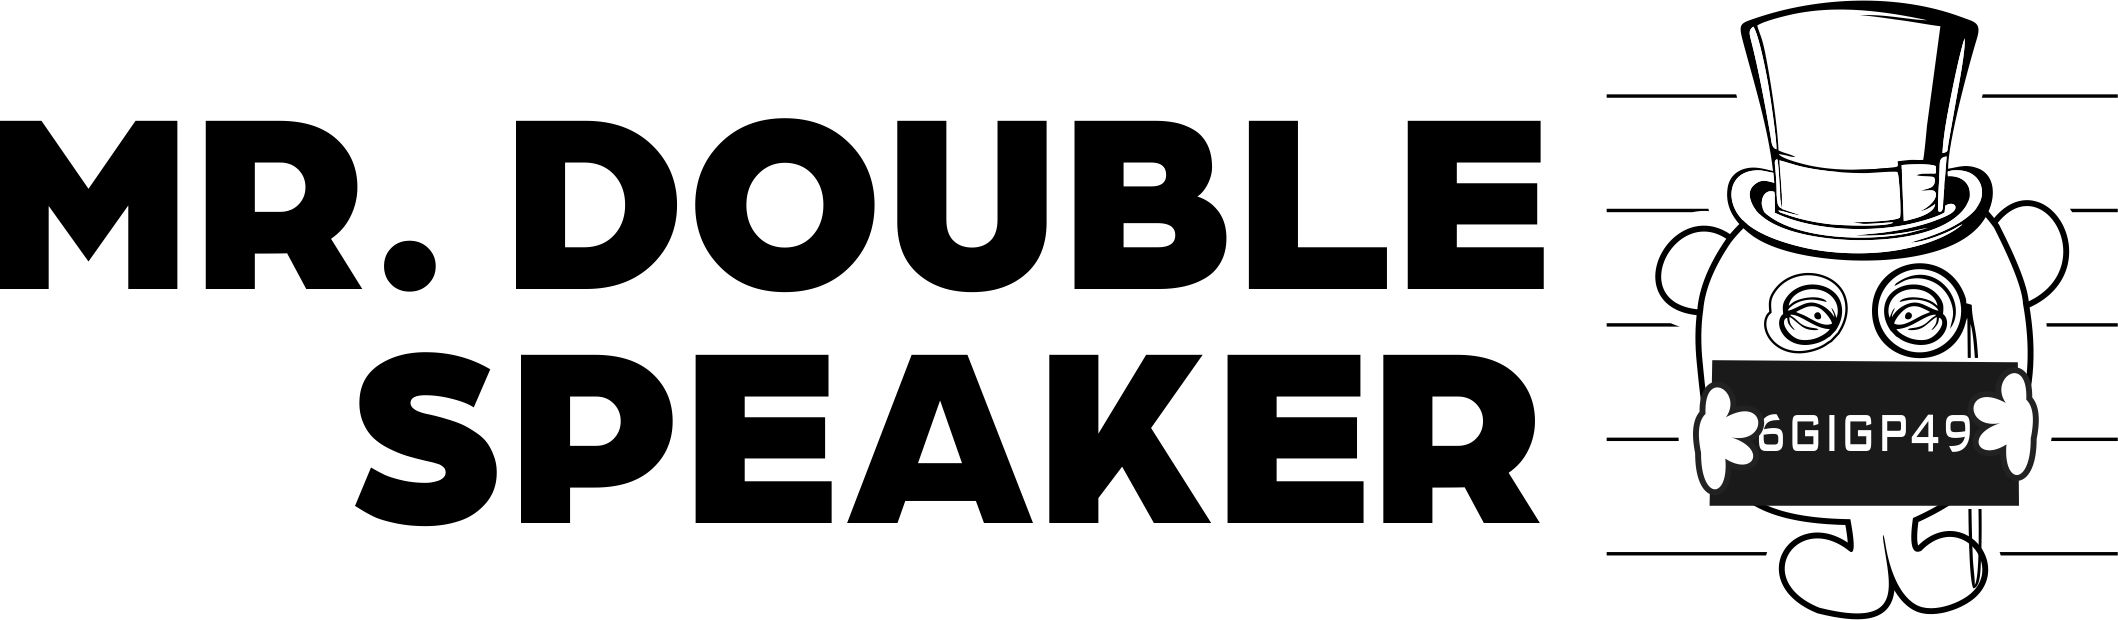 Mr Double Speaker text logo